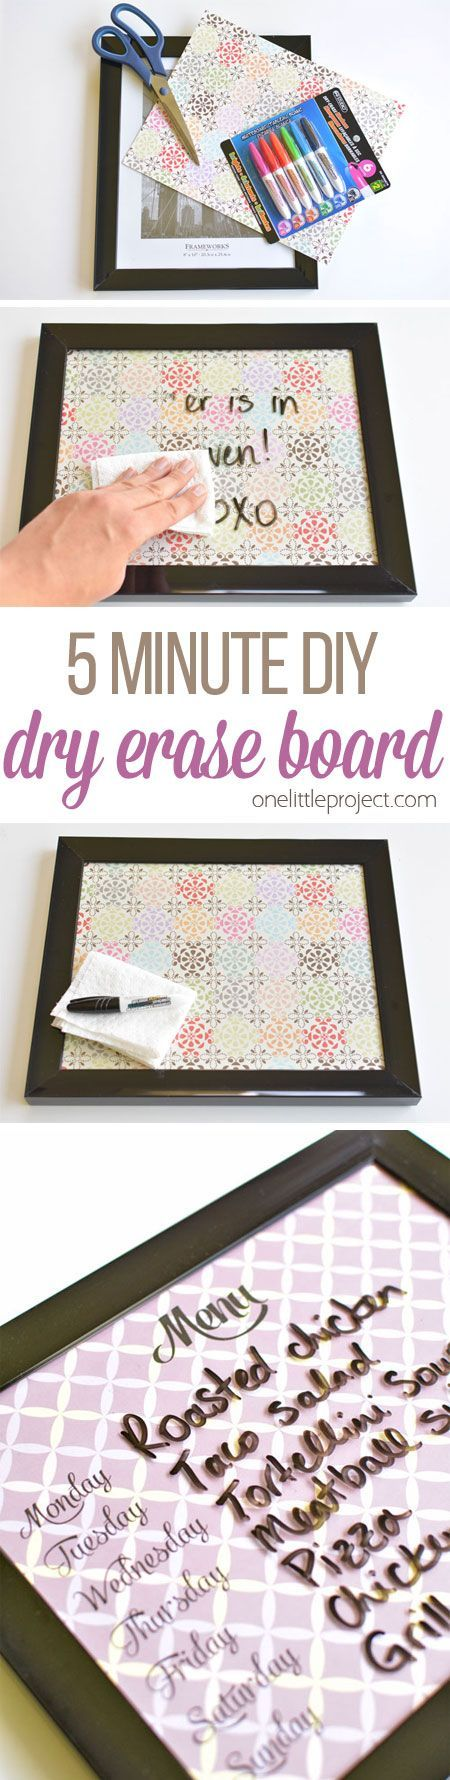 These DIY whiteboards are ridiculously easy to make. It takes less than five dollars and five minutes for each one! Such a pretty and EASY little project!: